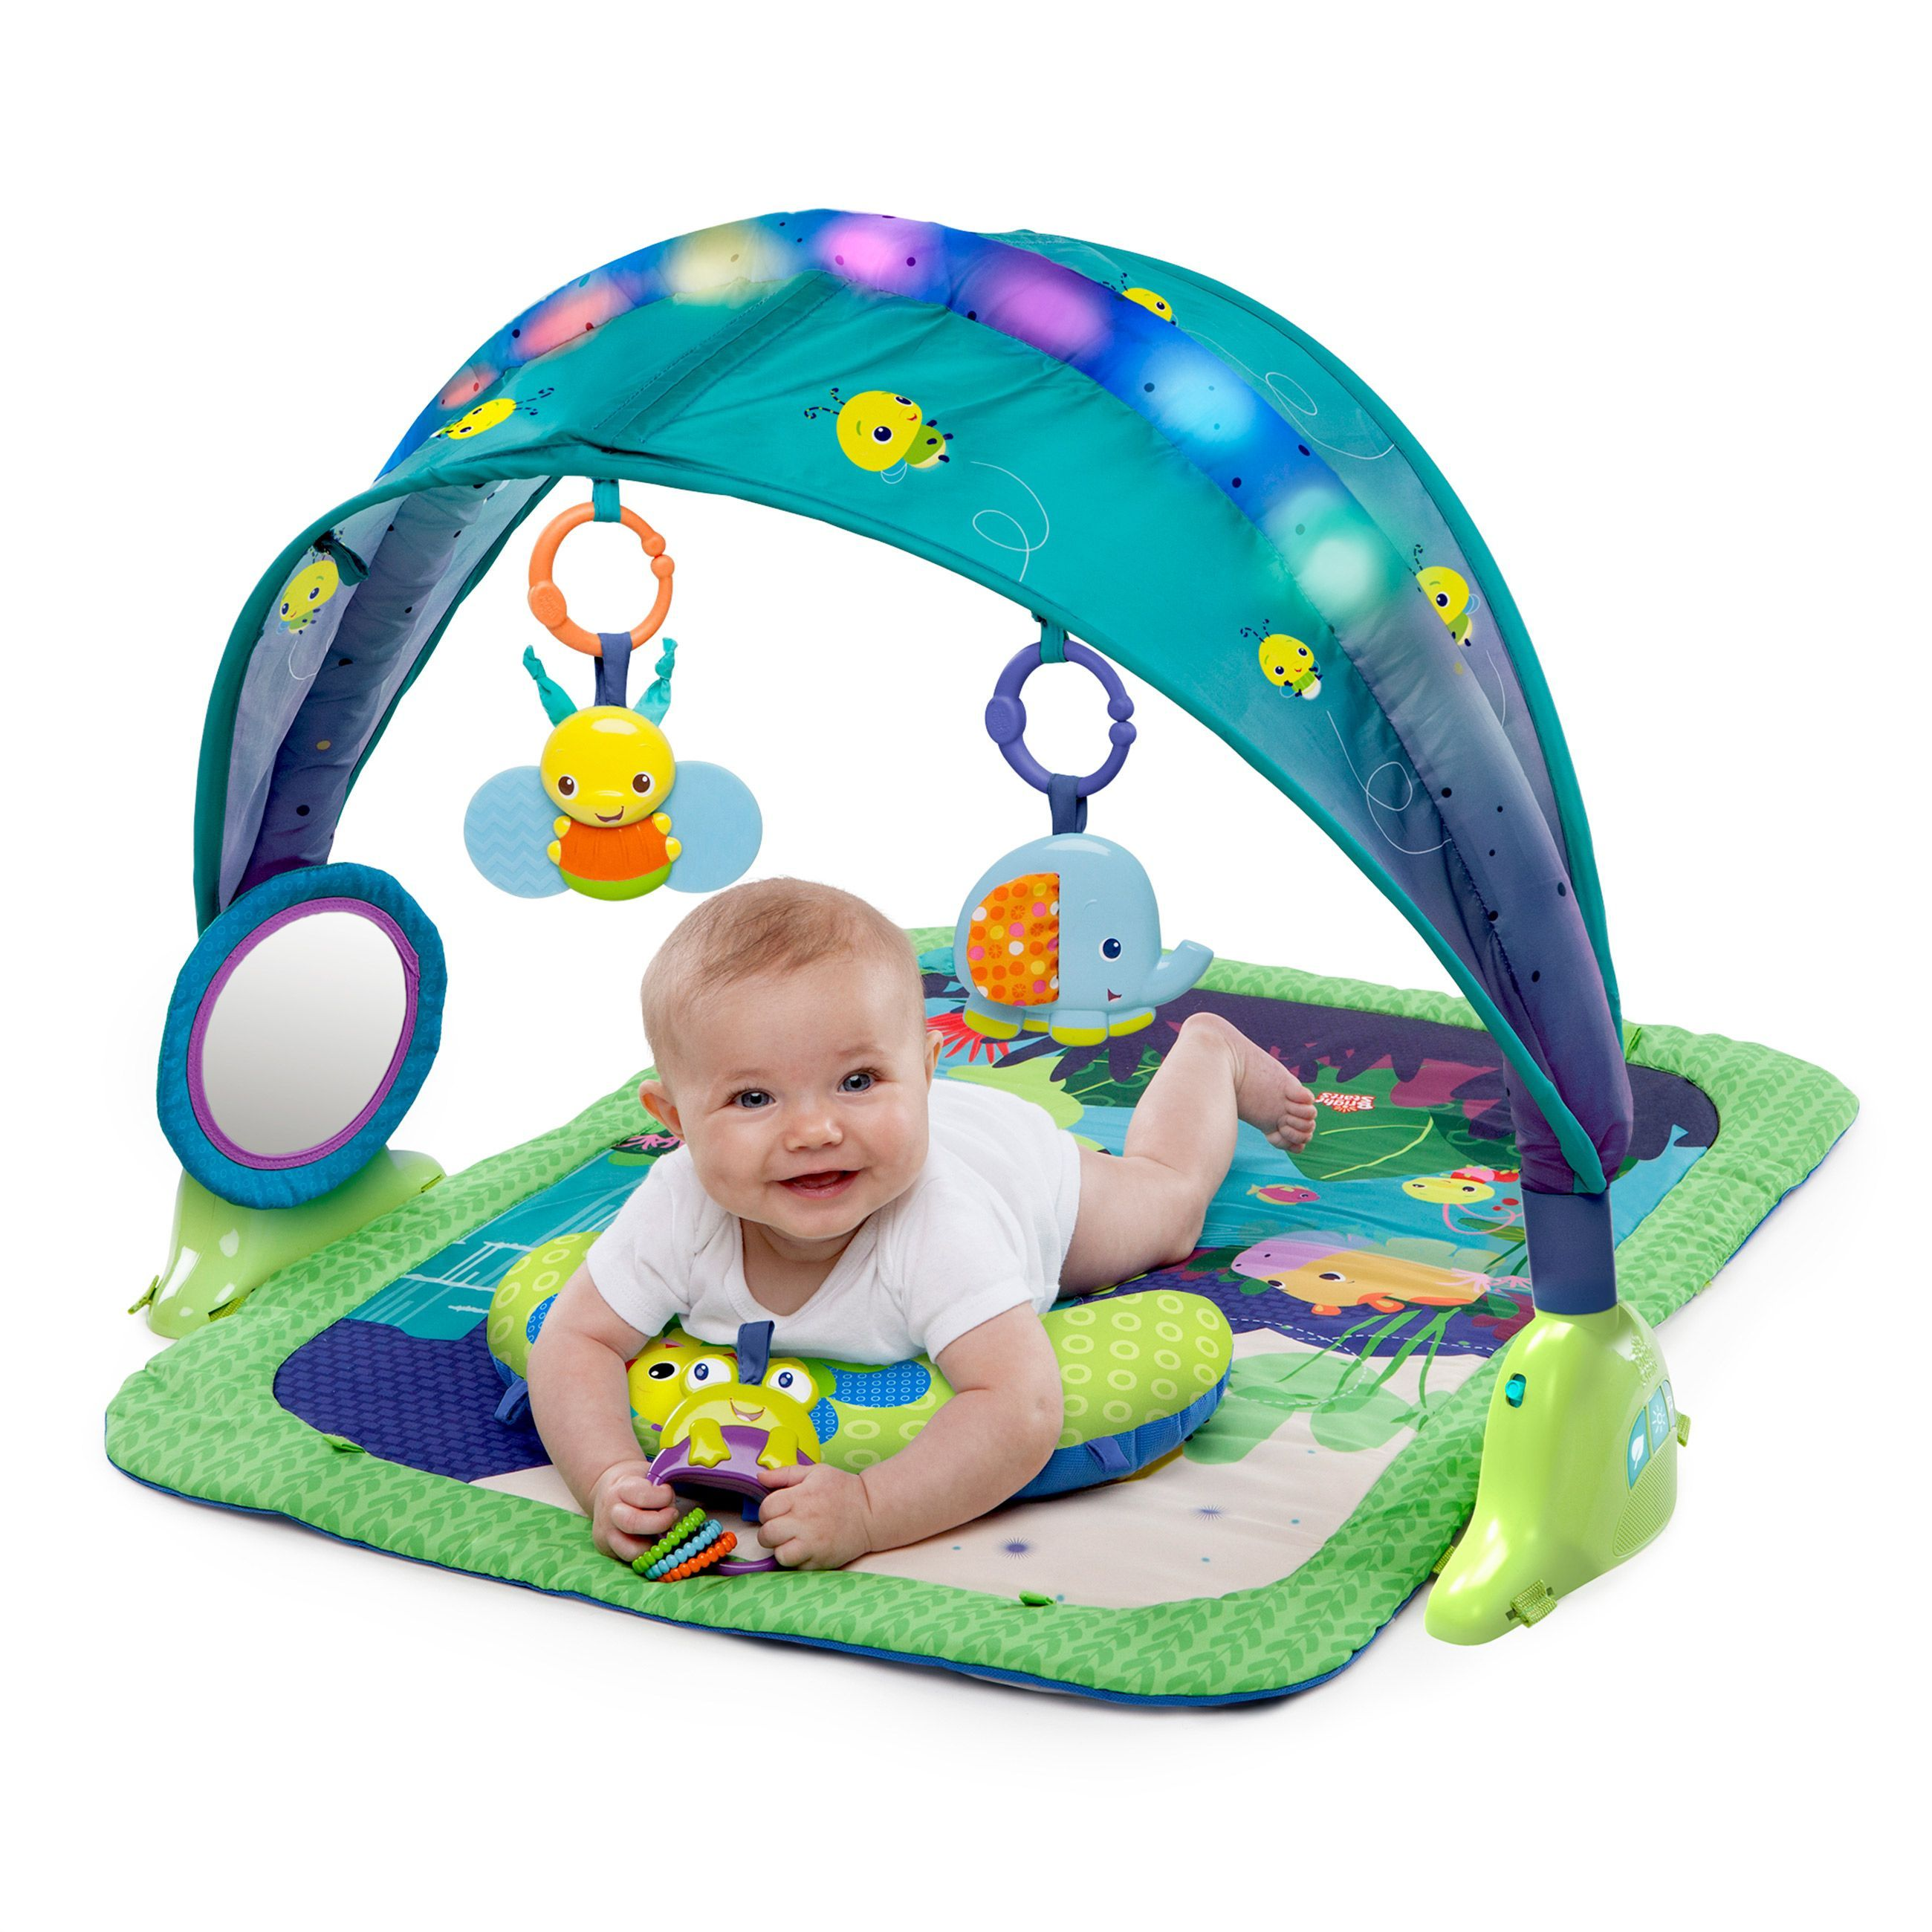 Exceptional Bright Starts Light Up Lagoon Activity Gym Available Online At Http://www.